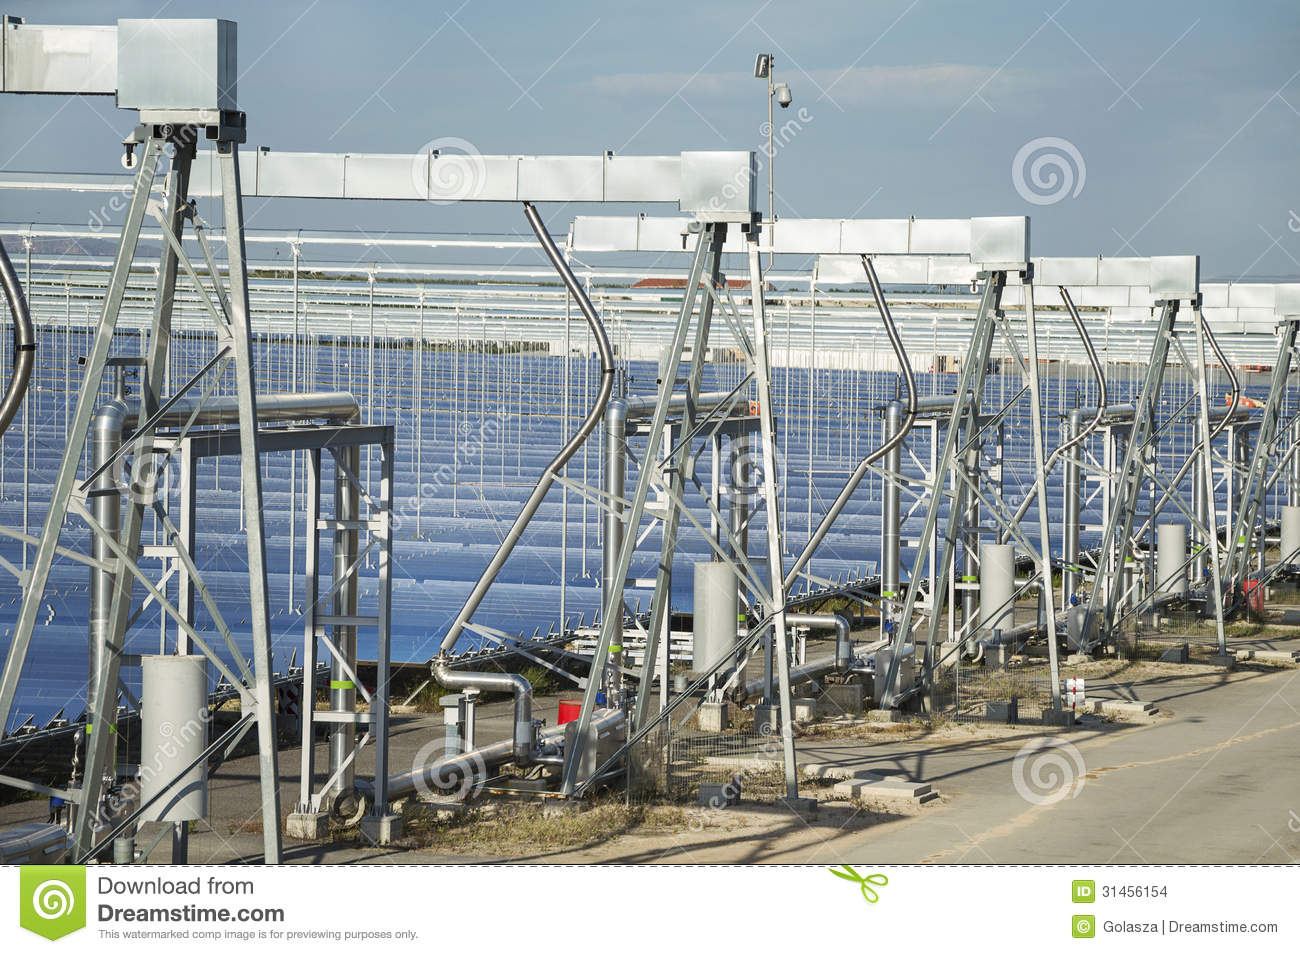 Renewable Energy: Solar as the best way to produce green energy